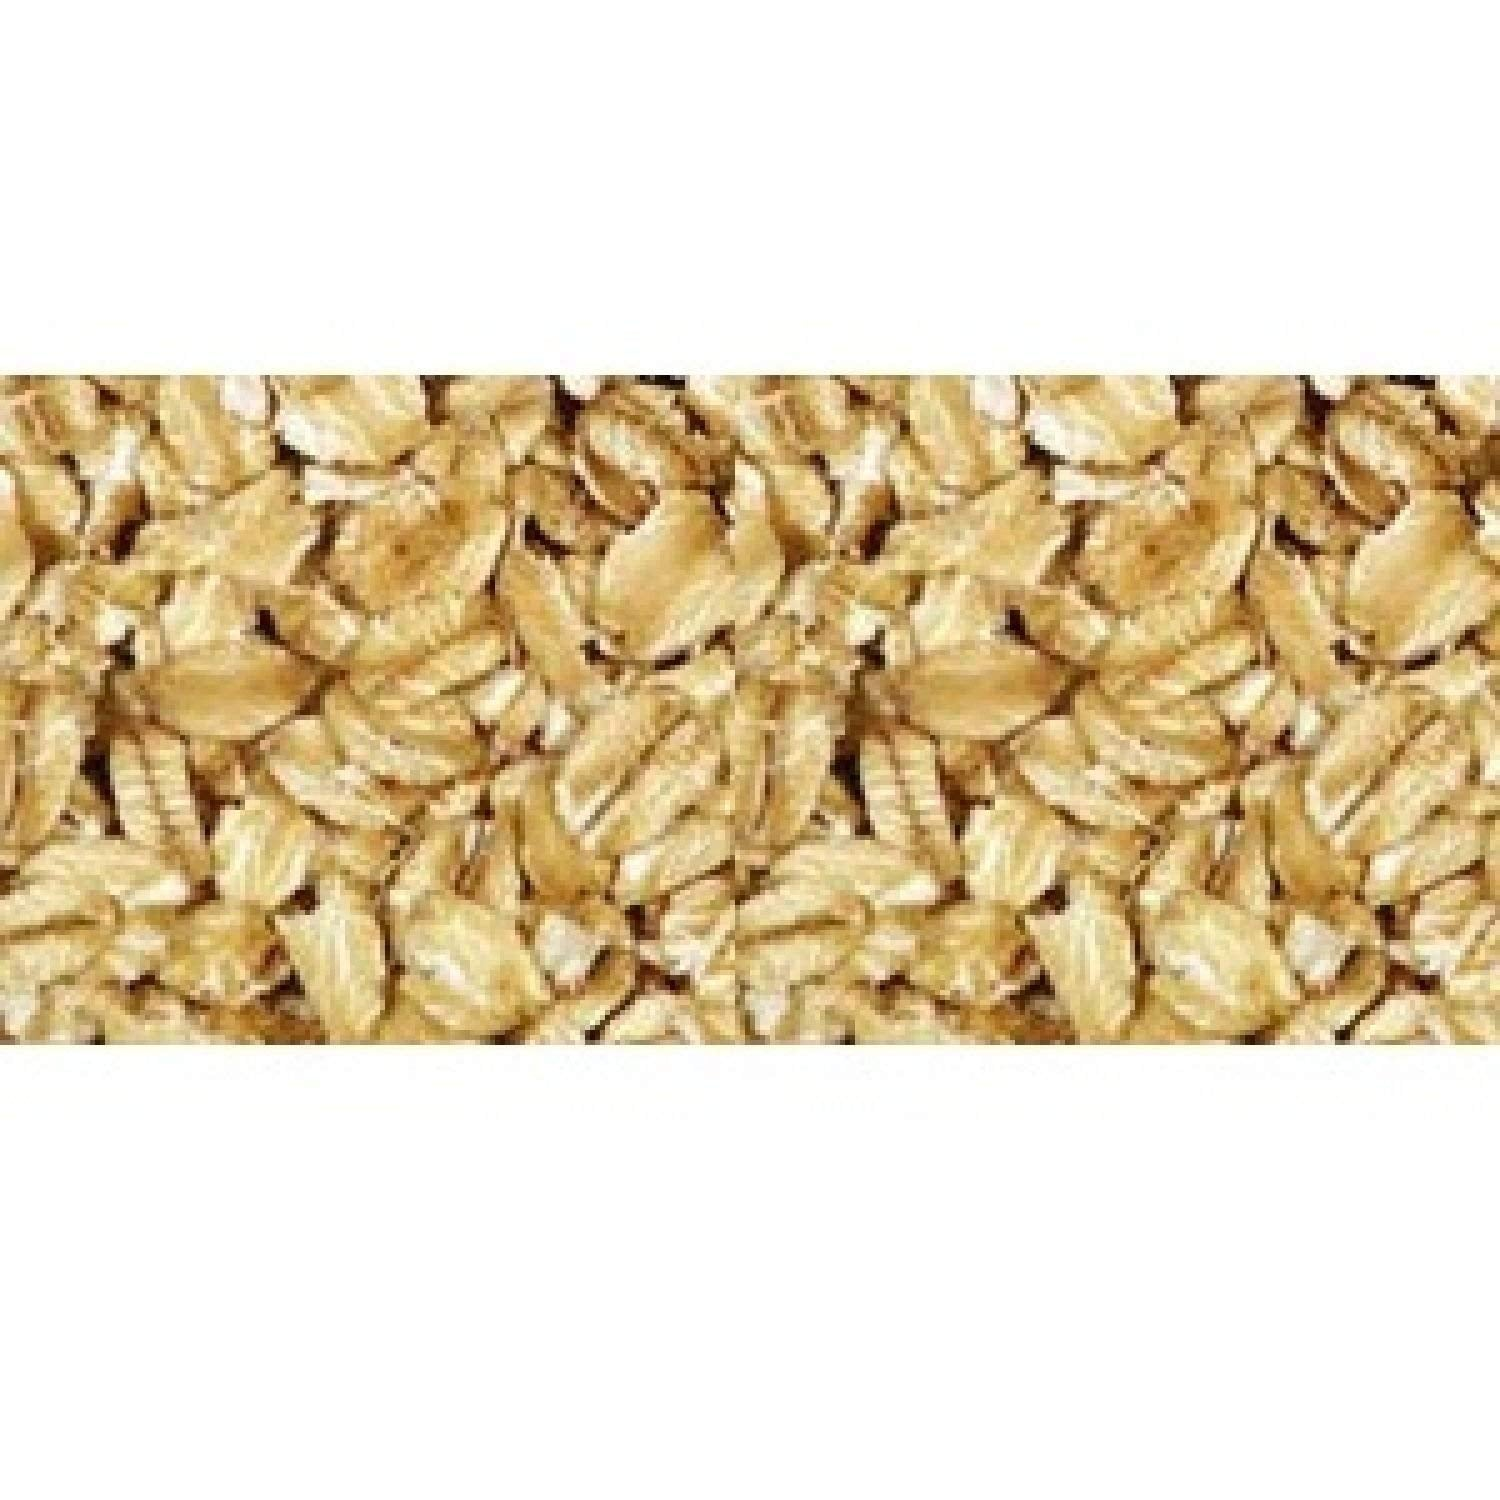 Grain Millers Rolled Oats, 25 lb